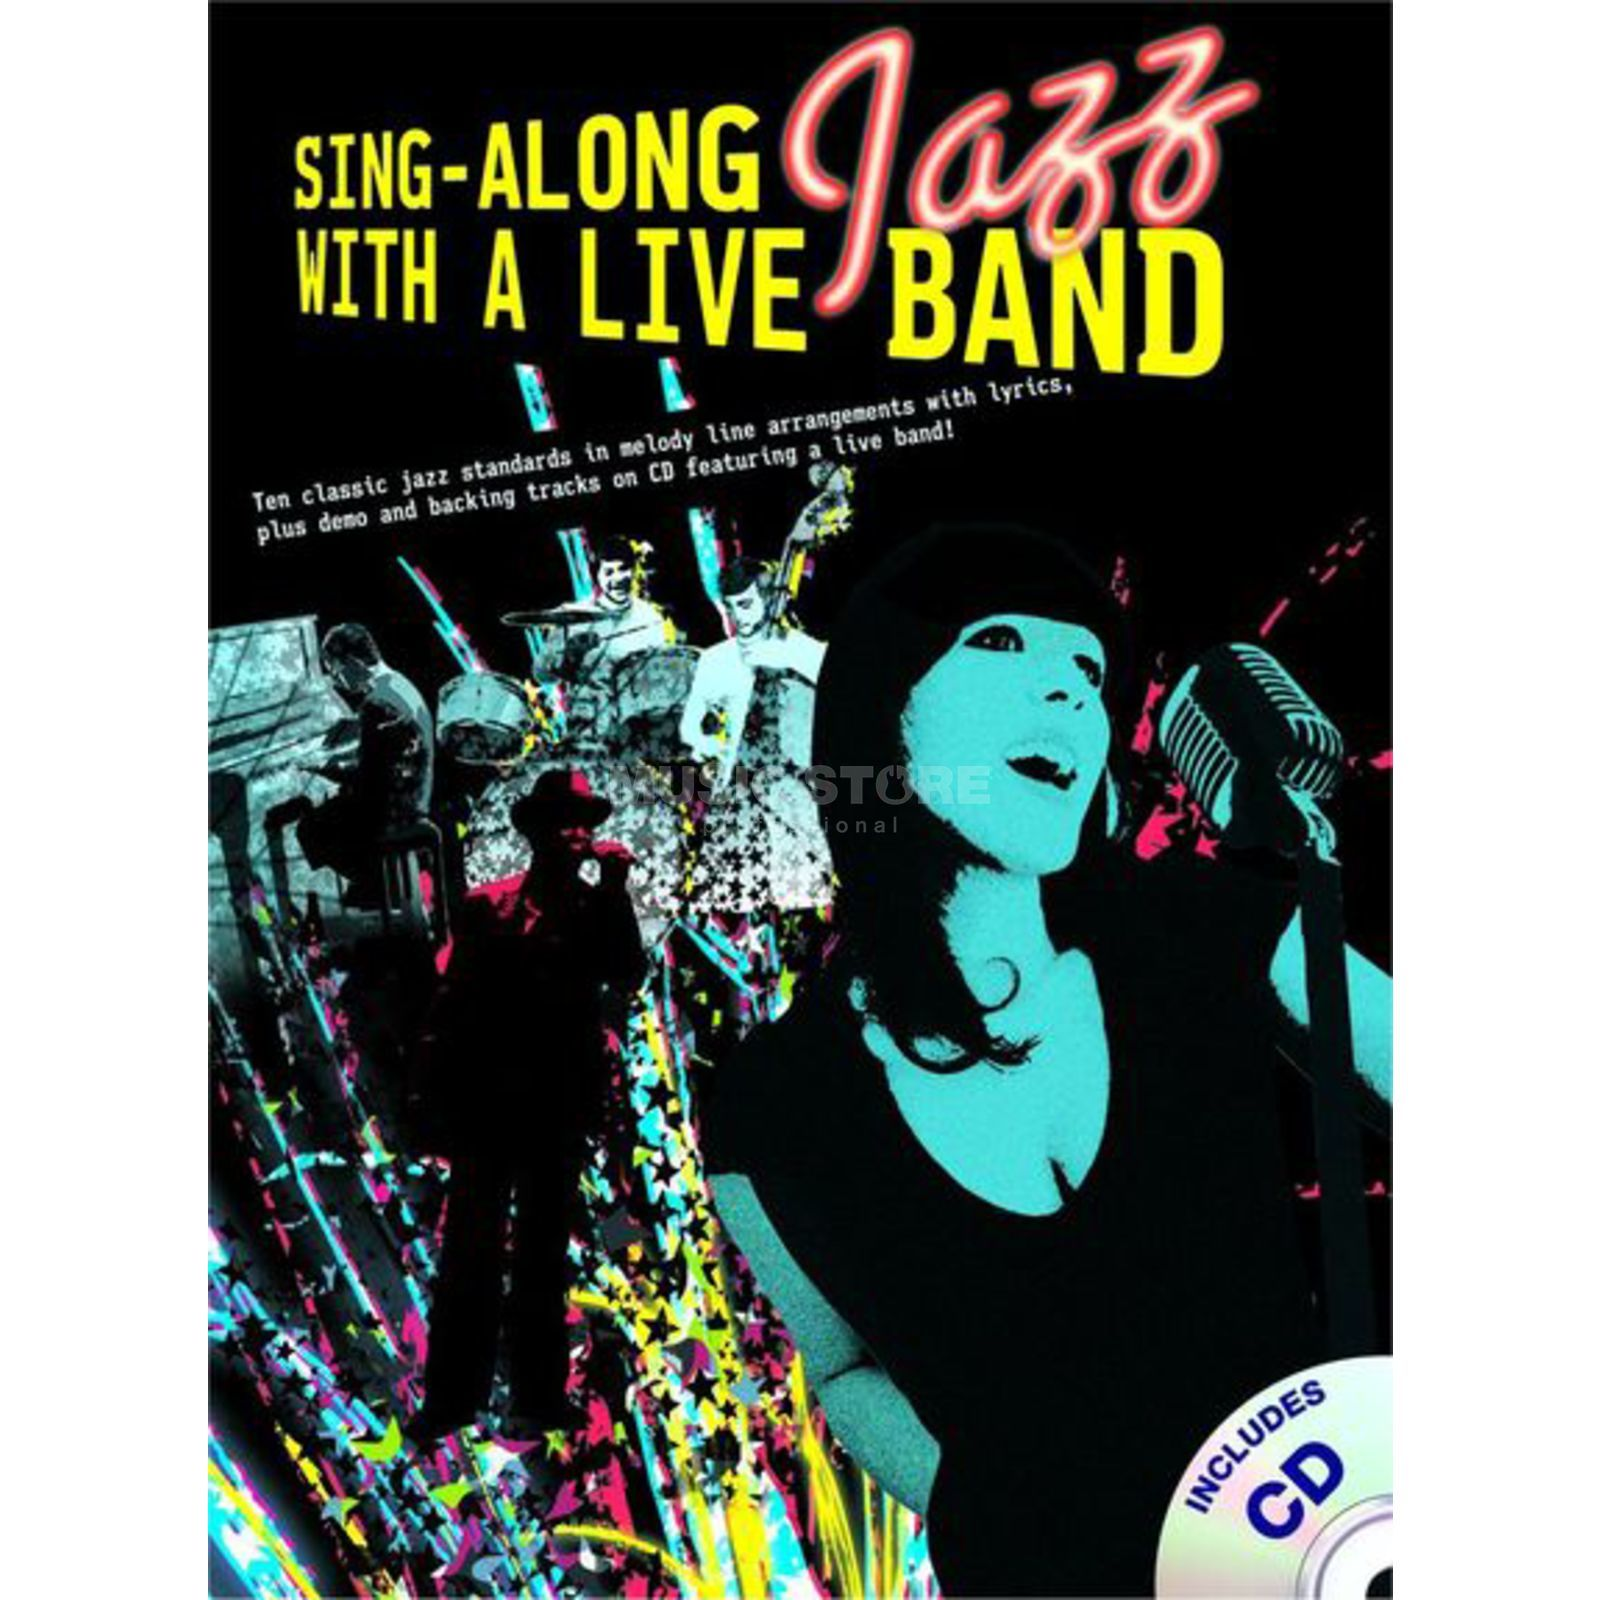 Wise Publications Sing-Along Jazz With Liveband Buch und CD Produktbild